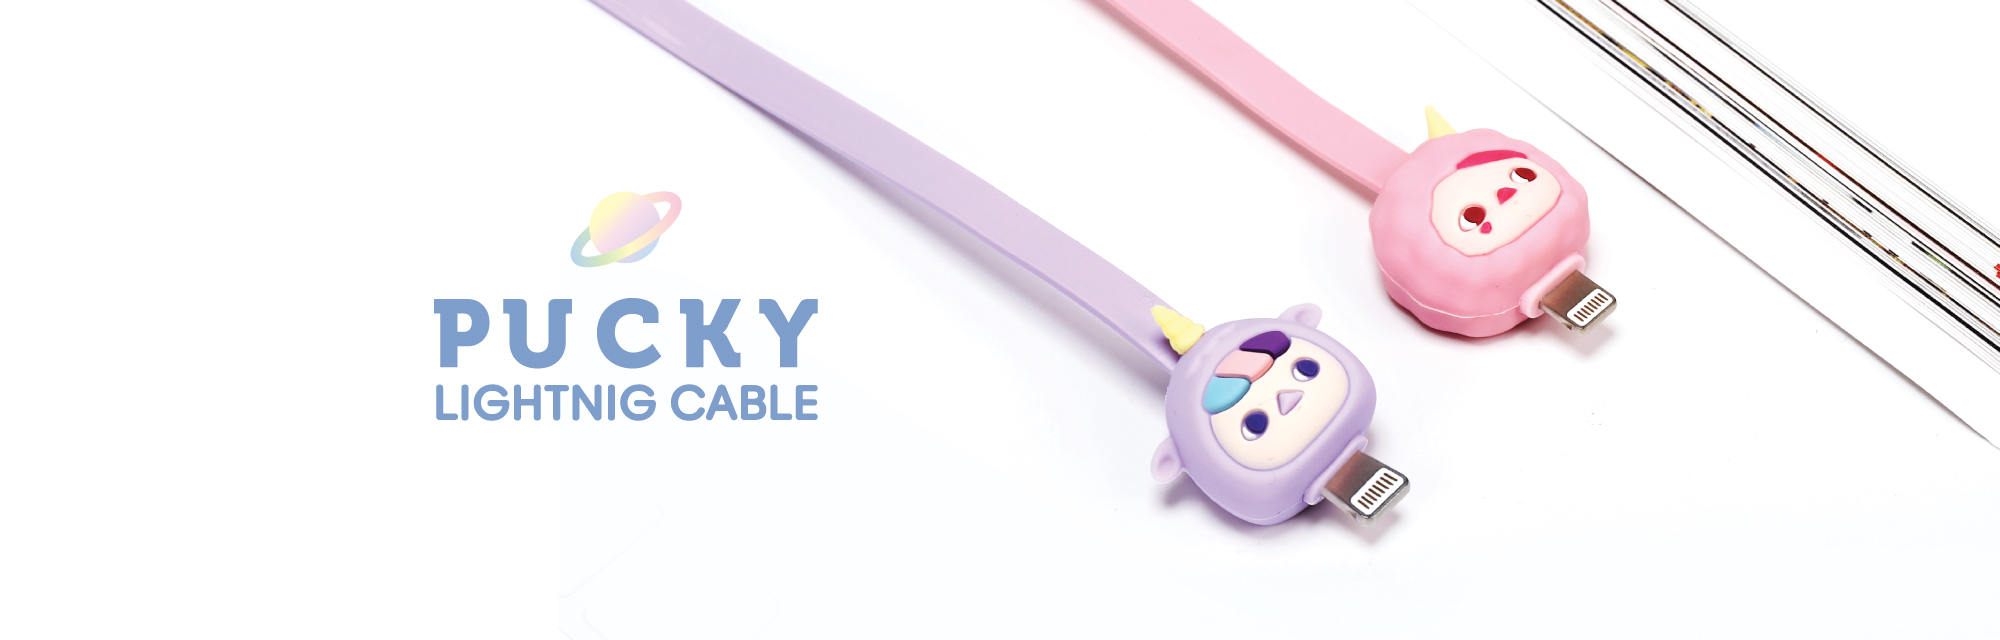 Pucky Lightning Cable